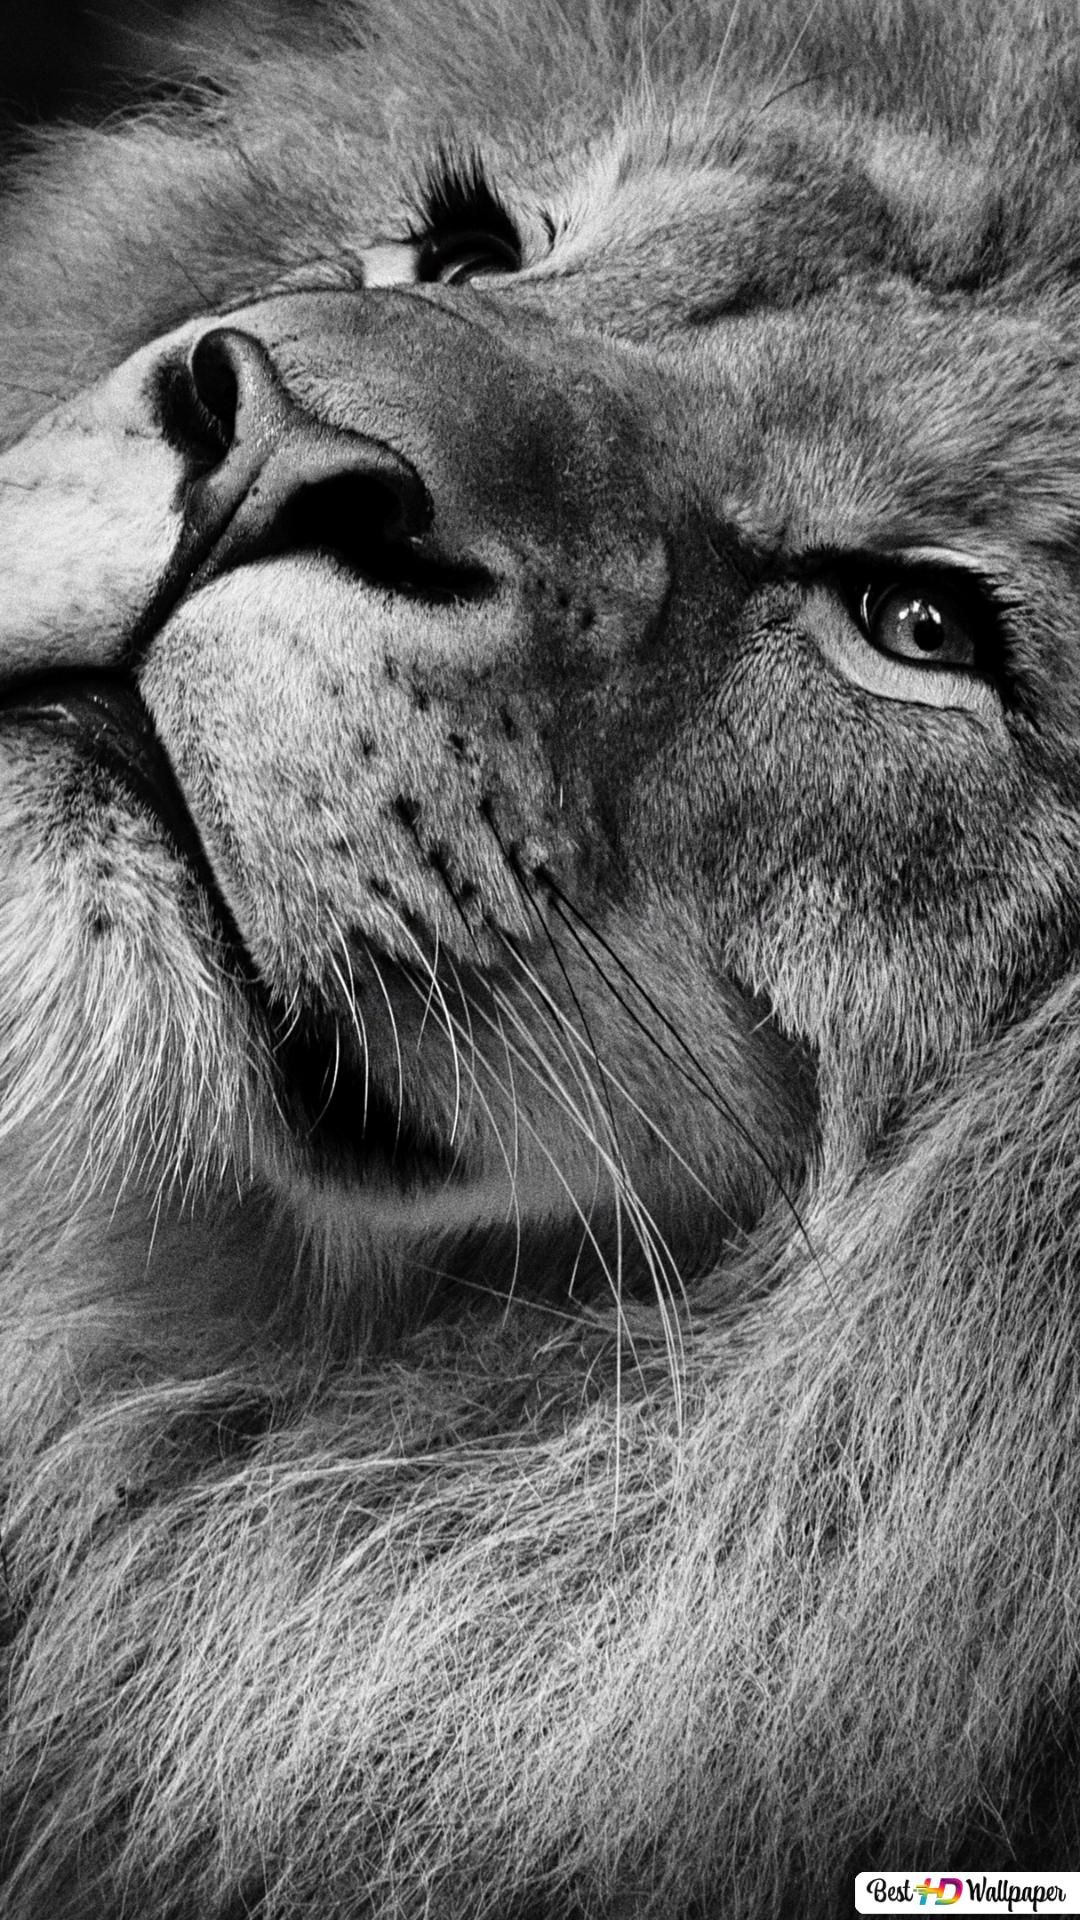 Lion Hd Wallpaper For Iphone 7 Wallpapersimages Org